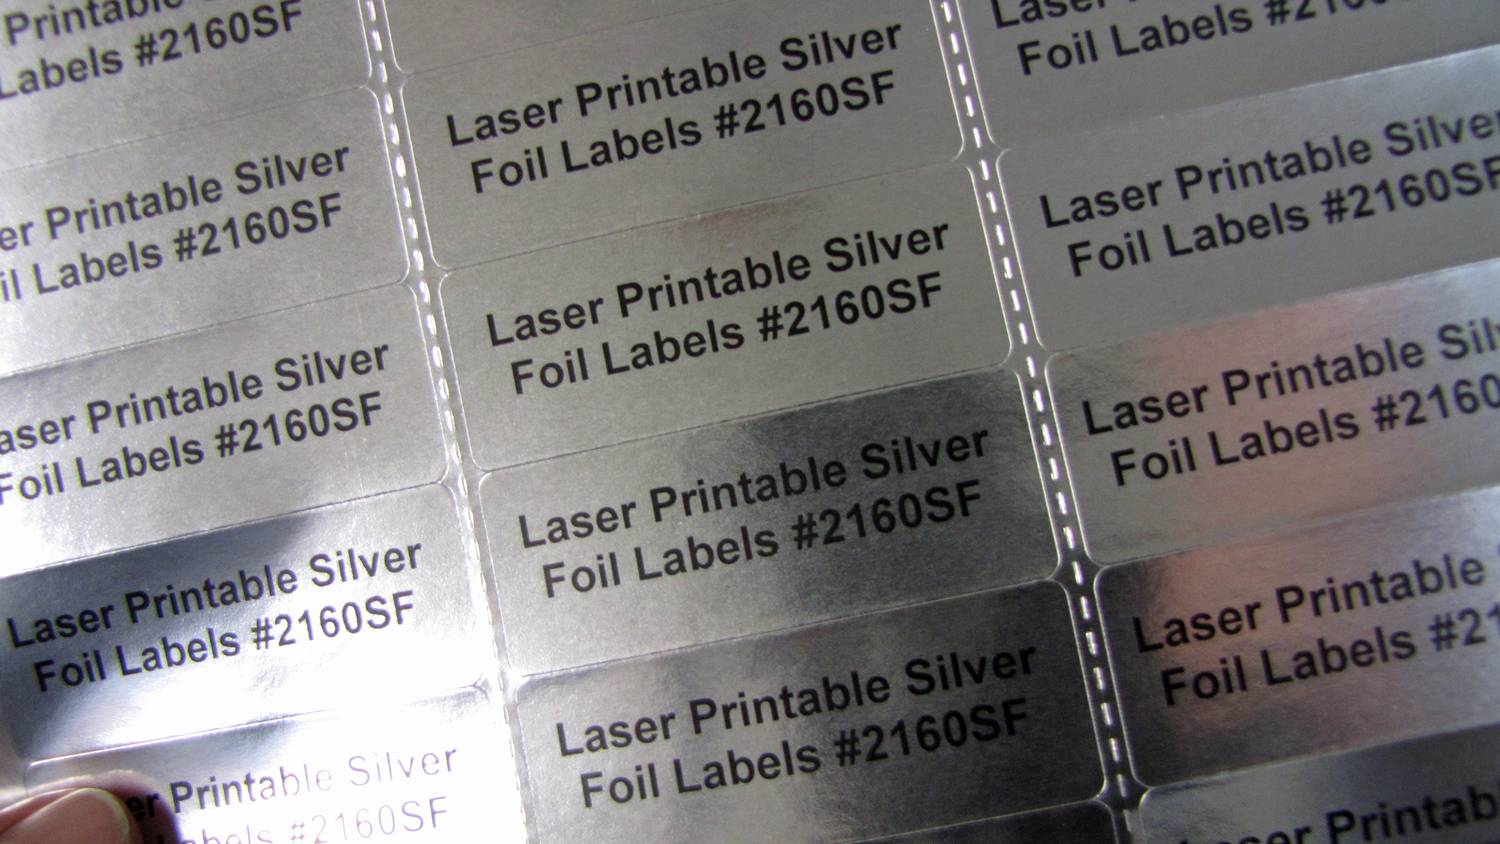 photograph relating to Printable Labels Sheets identified as Silver Foil 2 5/8 x 1 Laser Printable Labels 30 up 25 sheets 2610SF